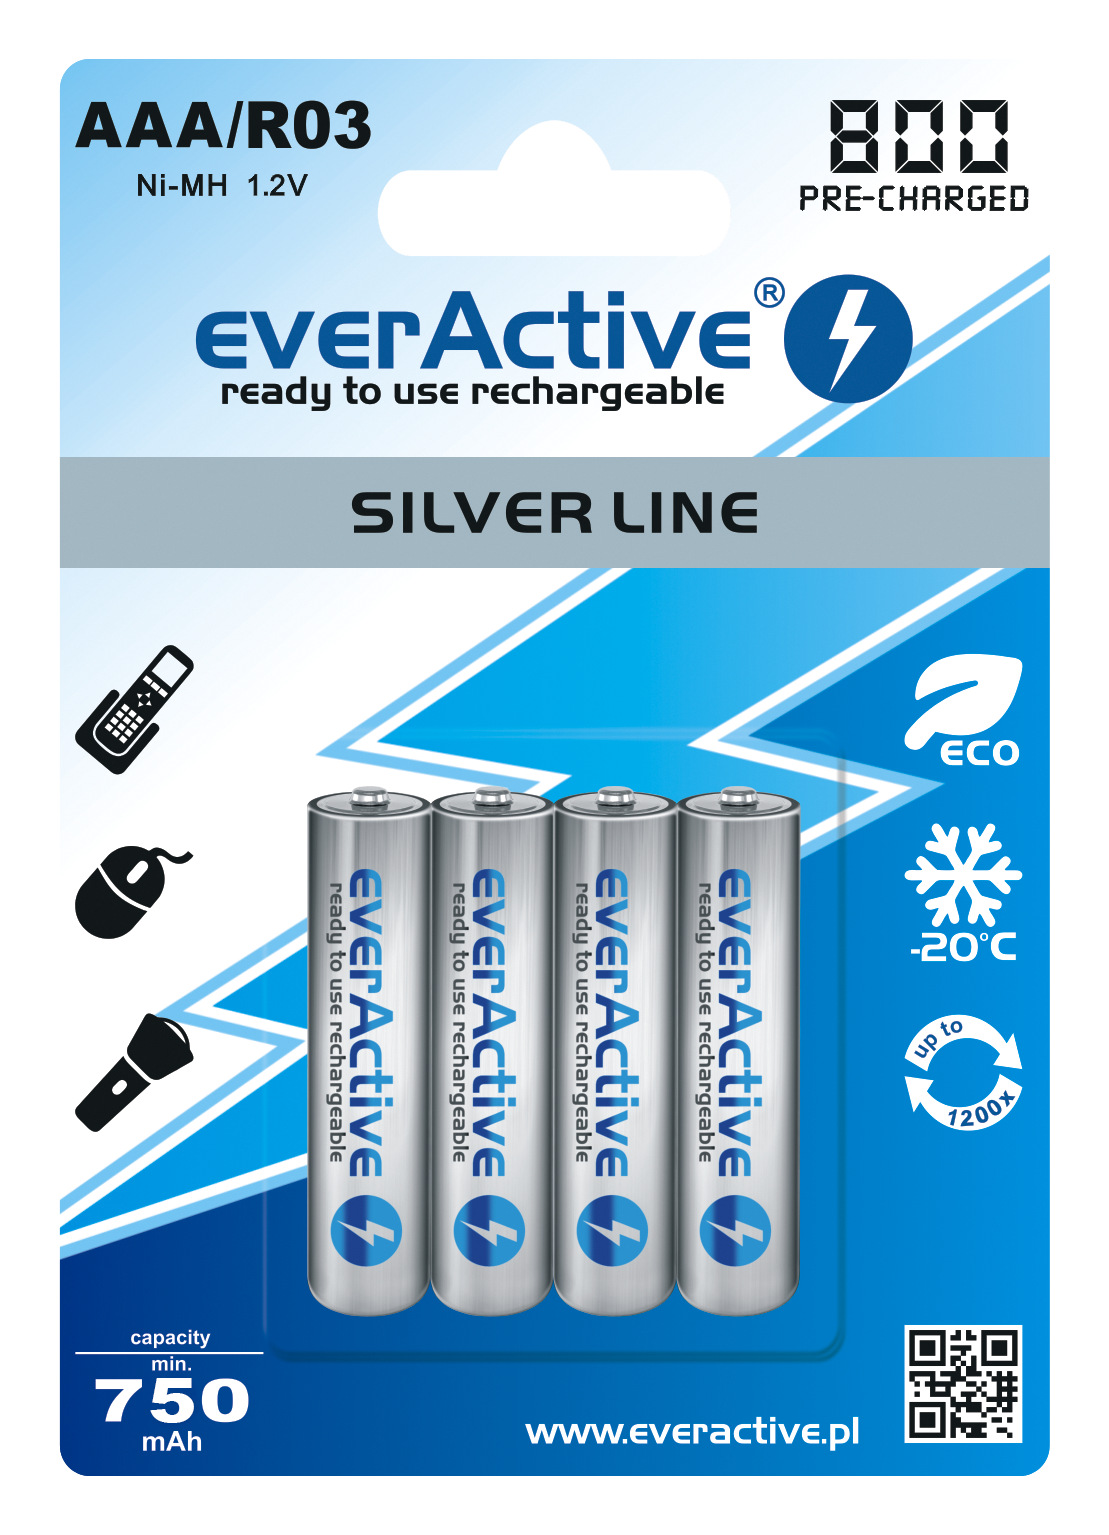 increased capacity of AAA silver line rechargeable batteries